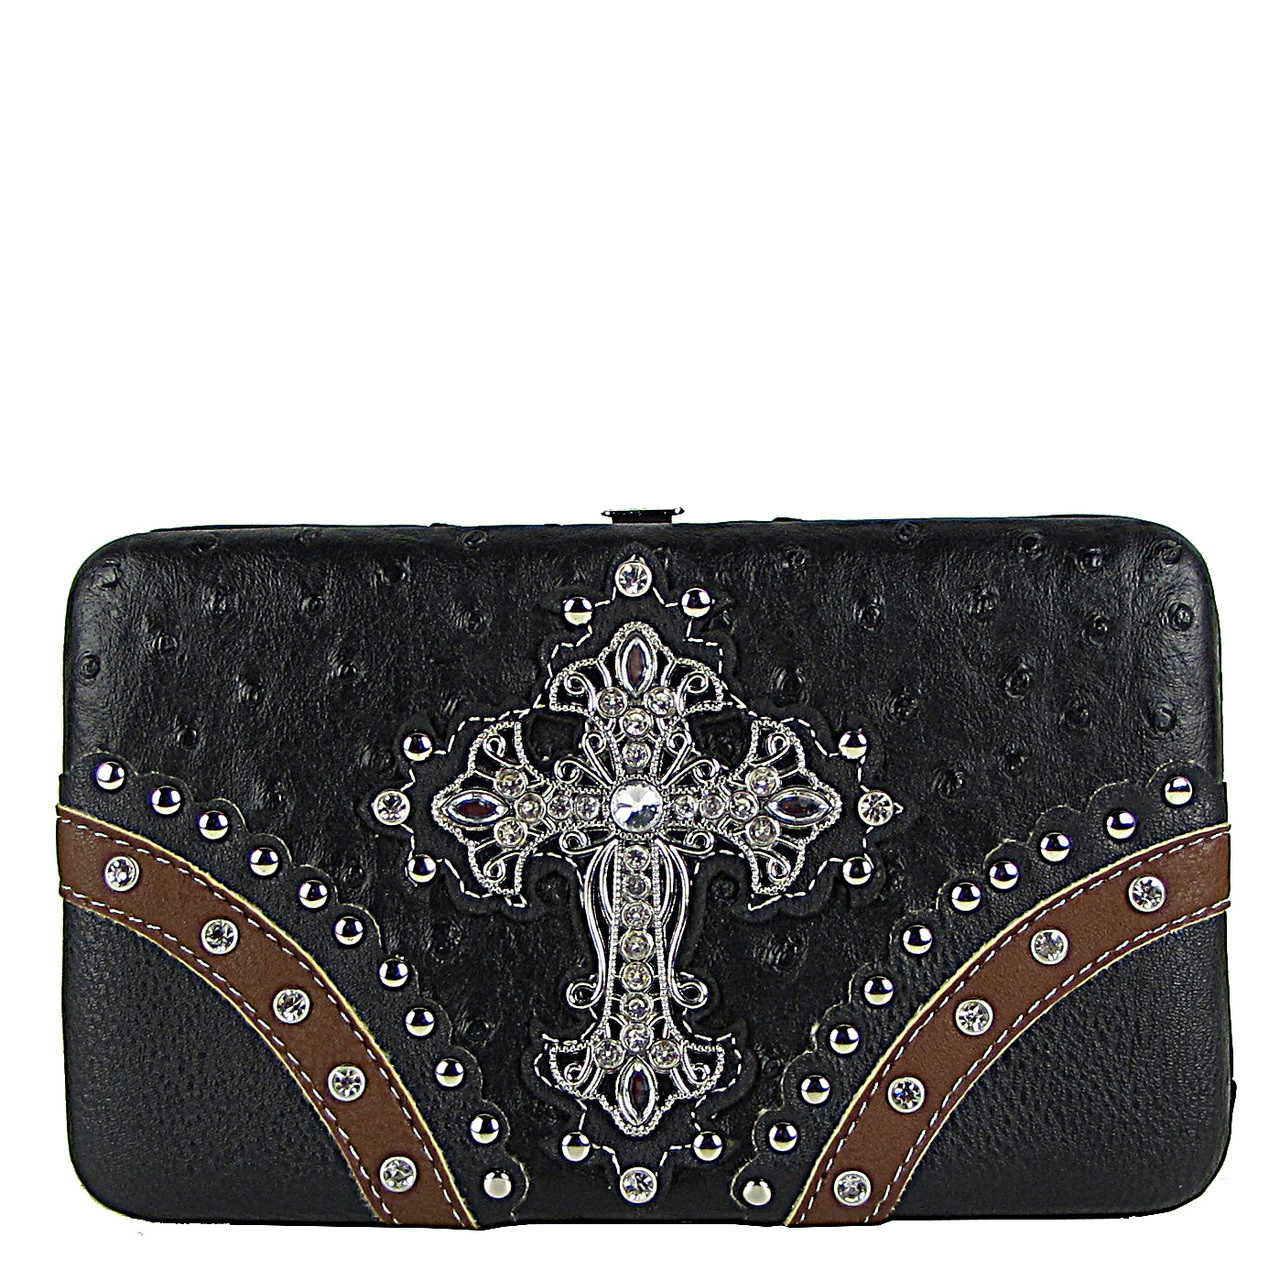 BLACK OSTRICH STUDDED RHINESTONE CROSS FLAT THICK WALLET FW2-04106BLK